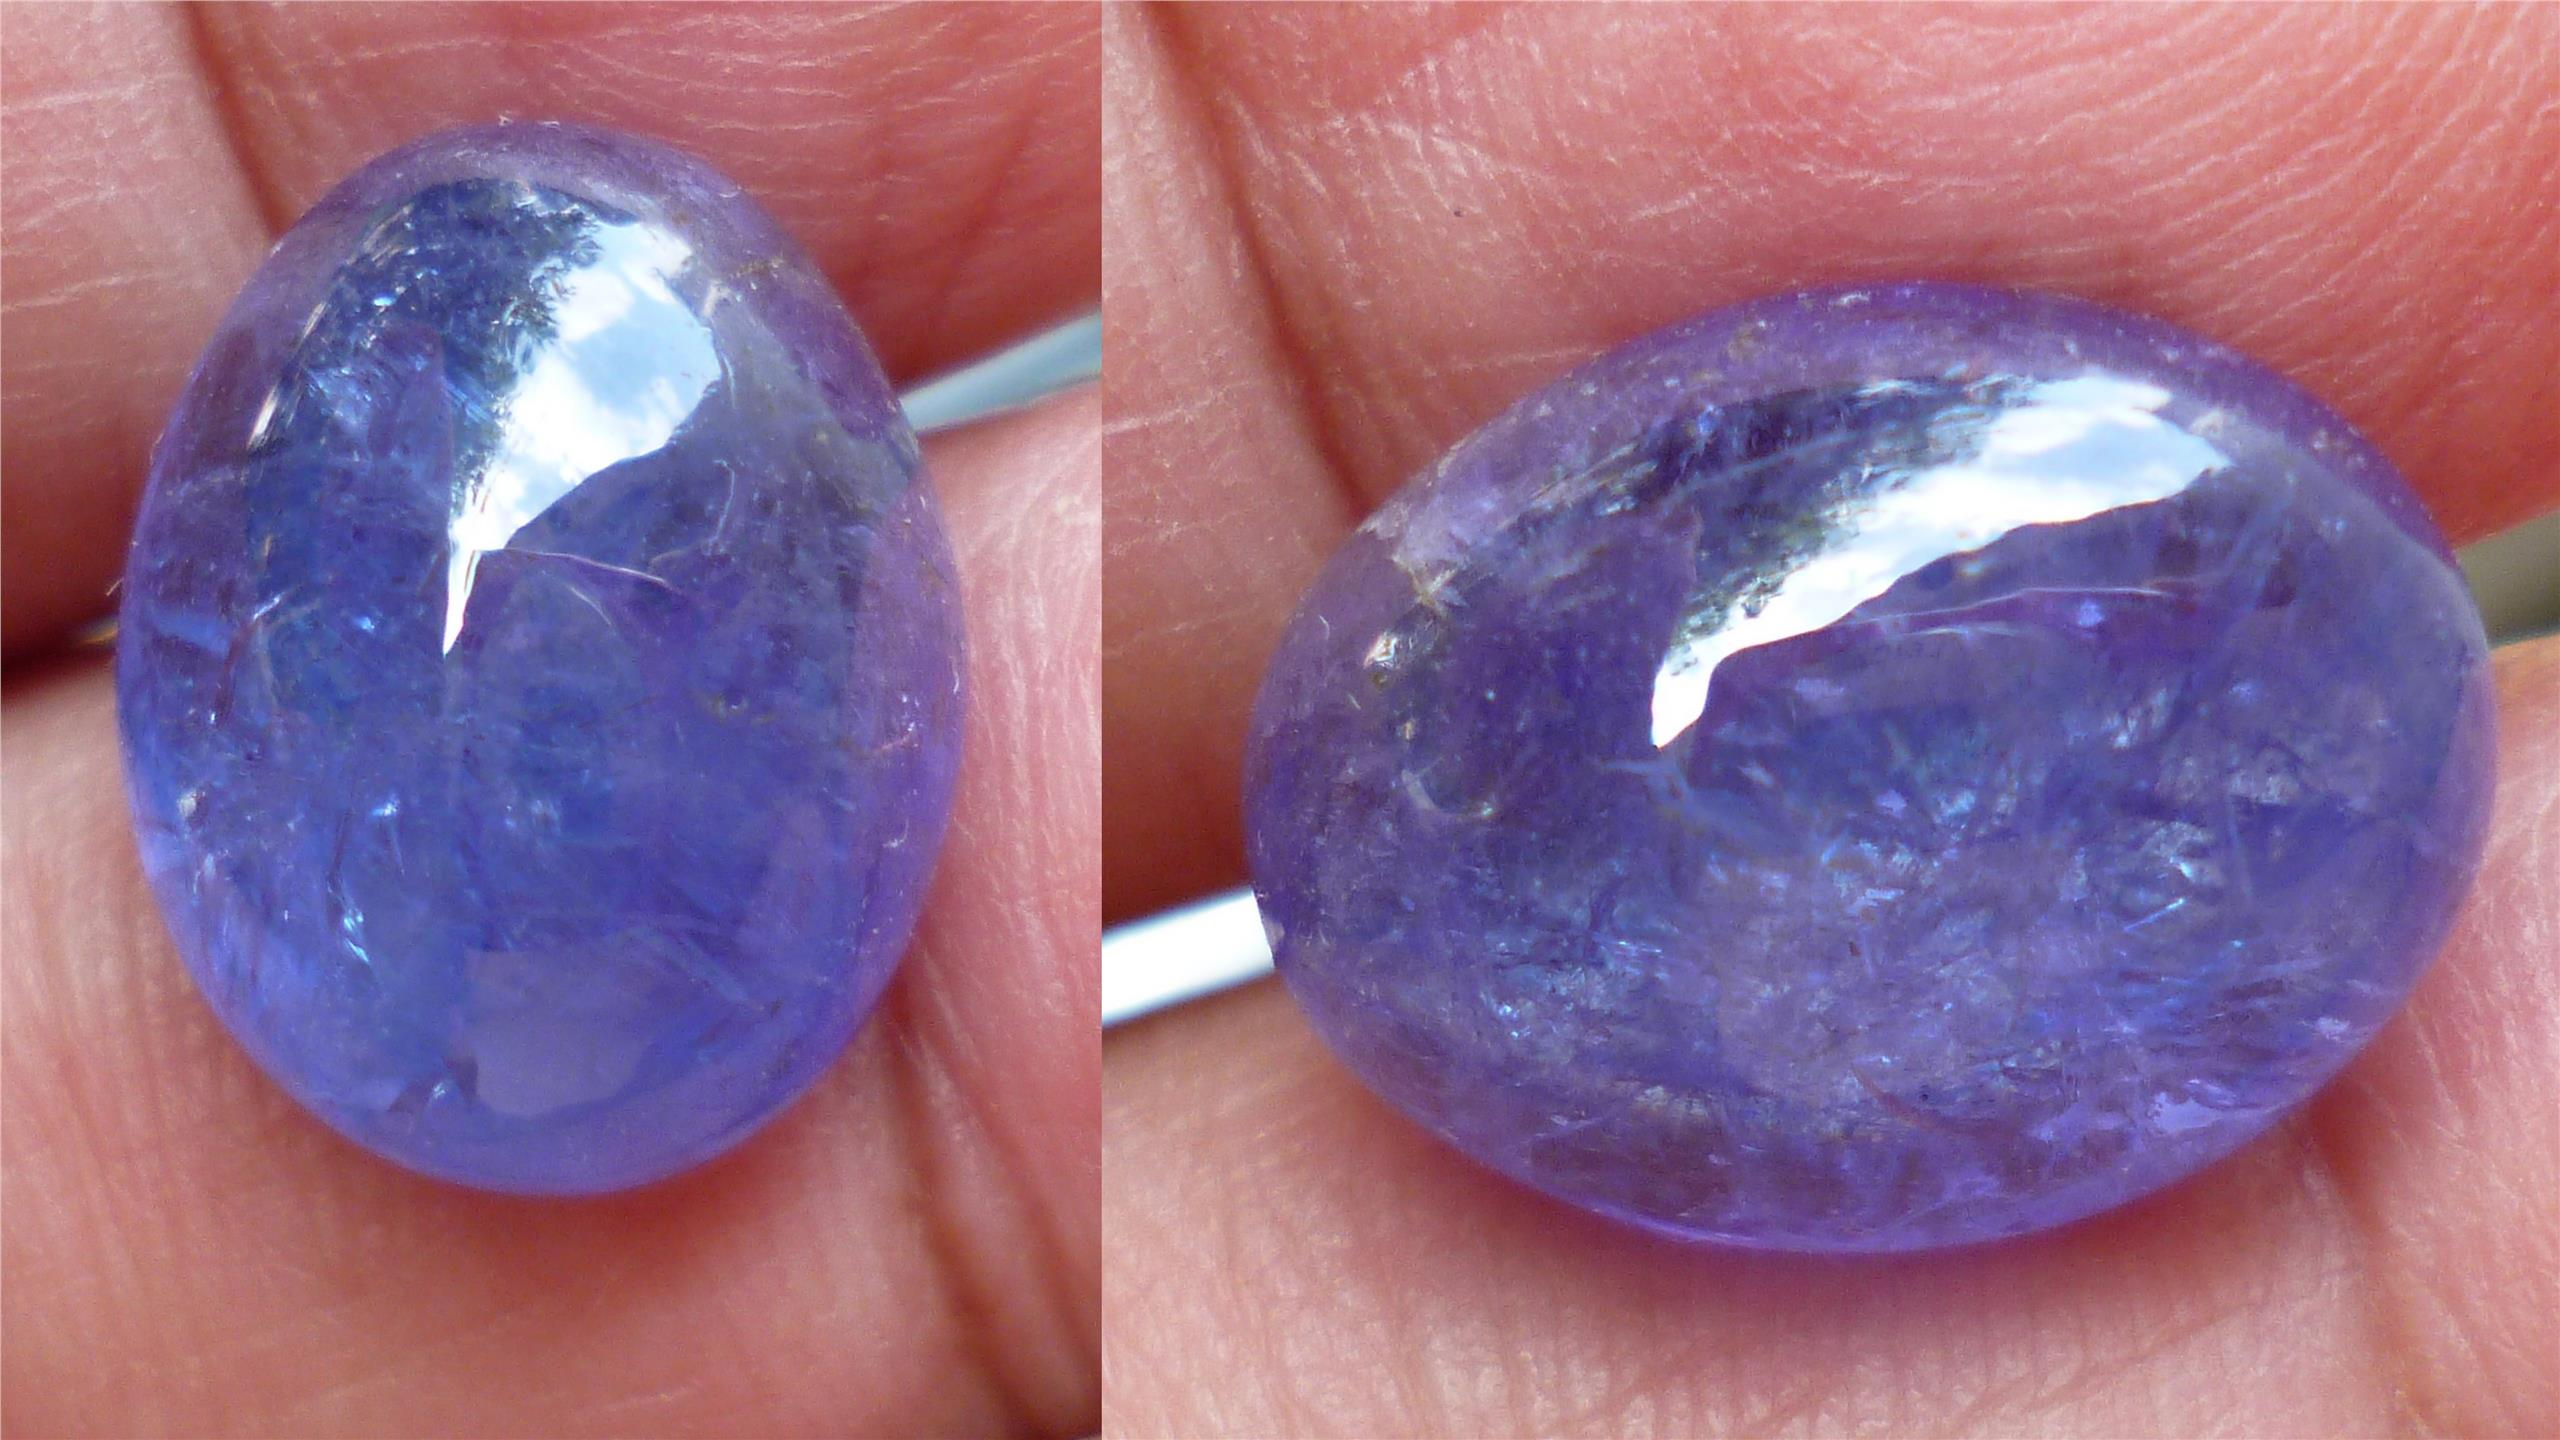 TANZANITE PURPLE COLORED GEMSTONE